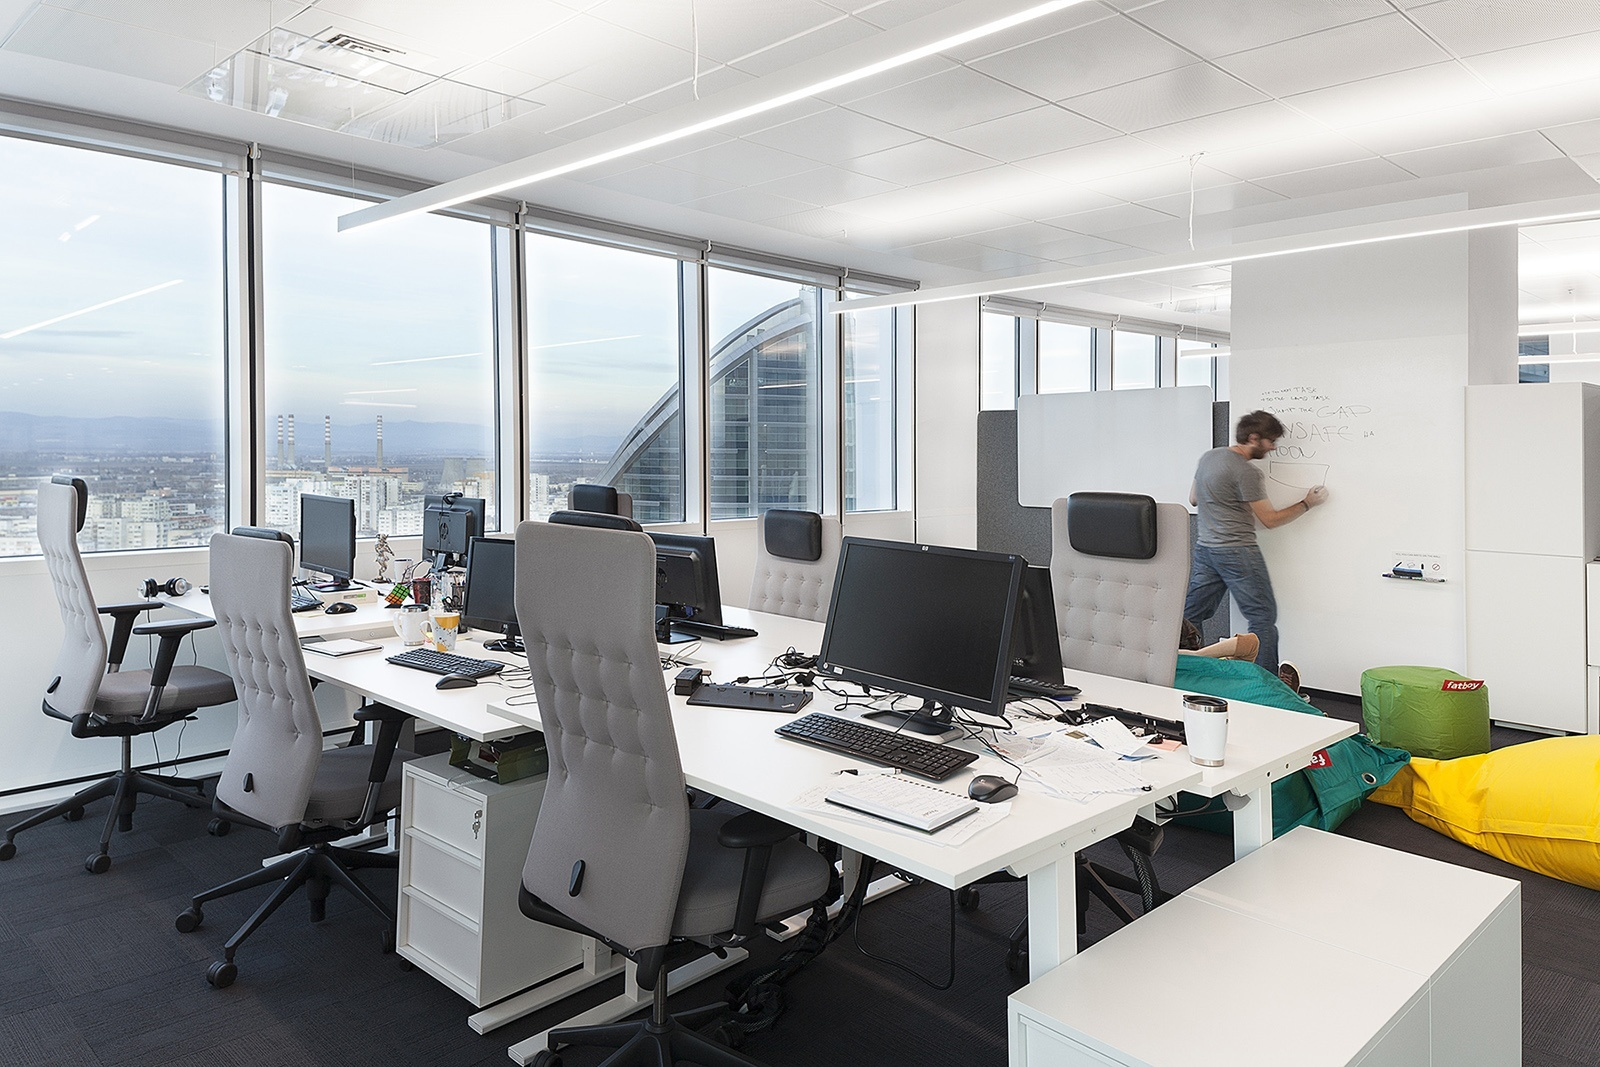 Another Look Inside Paysafes New Sofia Office  Officelovin